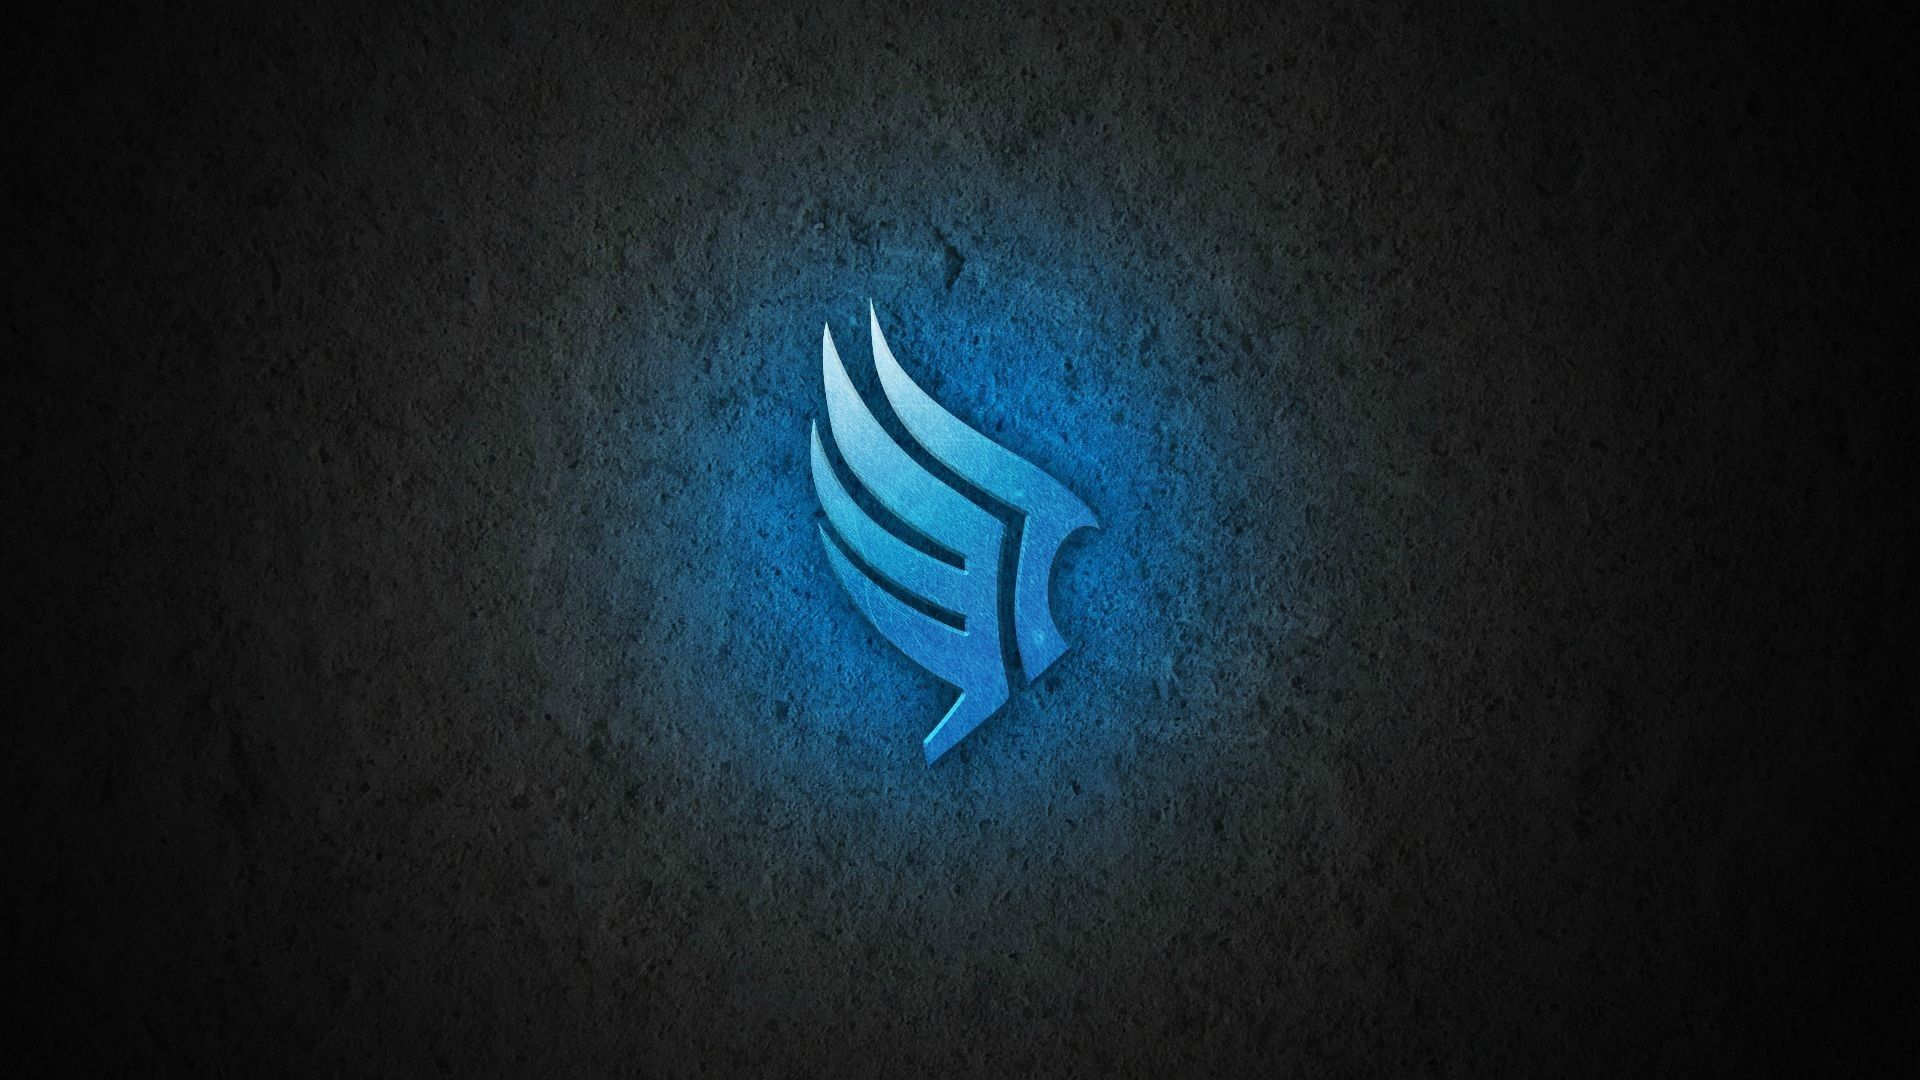 Black And Blue Gaming Wallpapers Top Free Black And Blue Gaming Backgrounds Wallpaperaccess